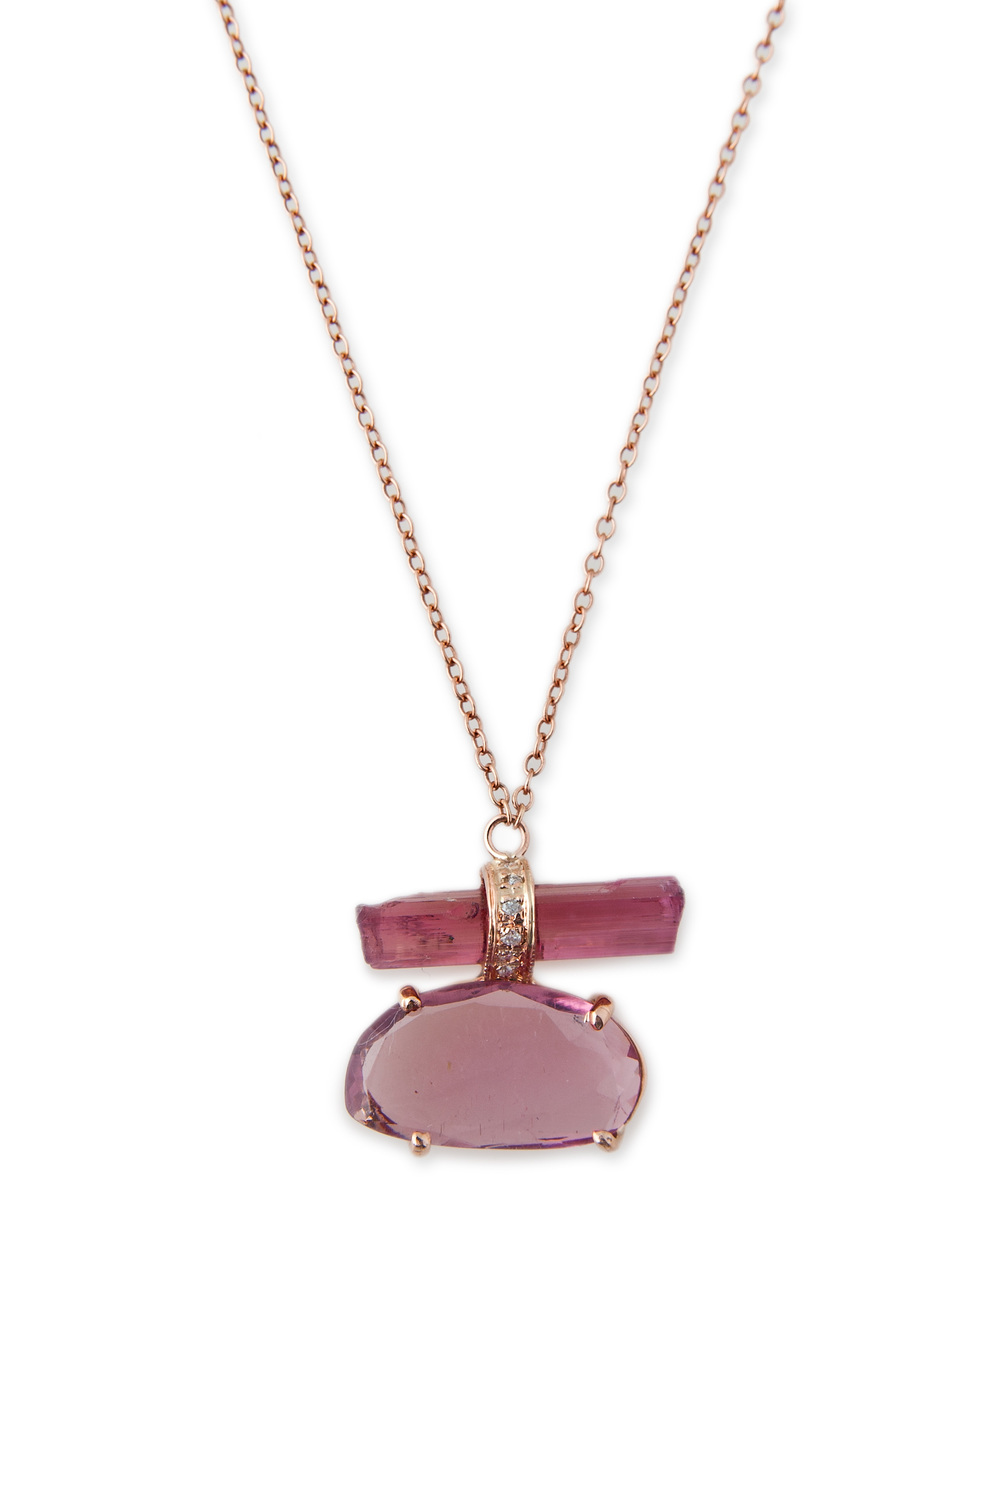 Pink Tourmaline Bar and Freeform Tourmaline necklace, $2,065, available at Broken English.